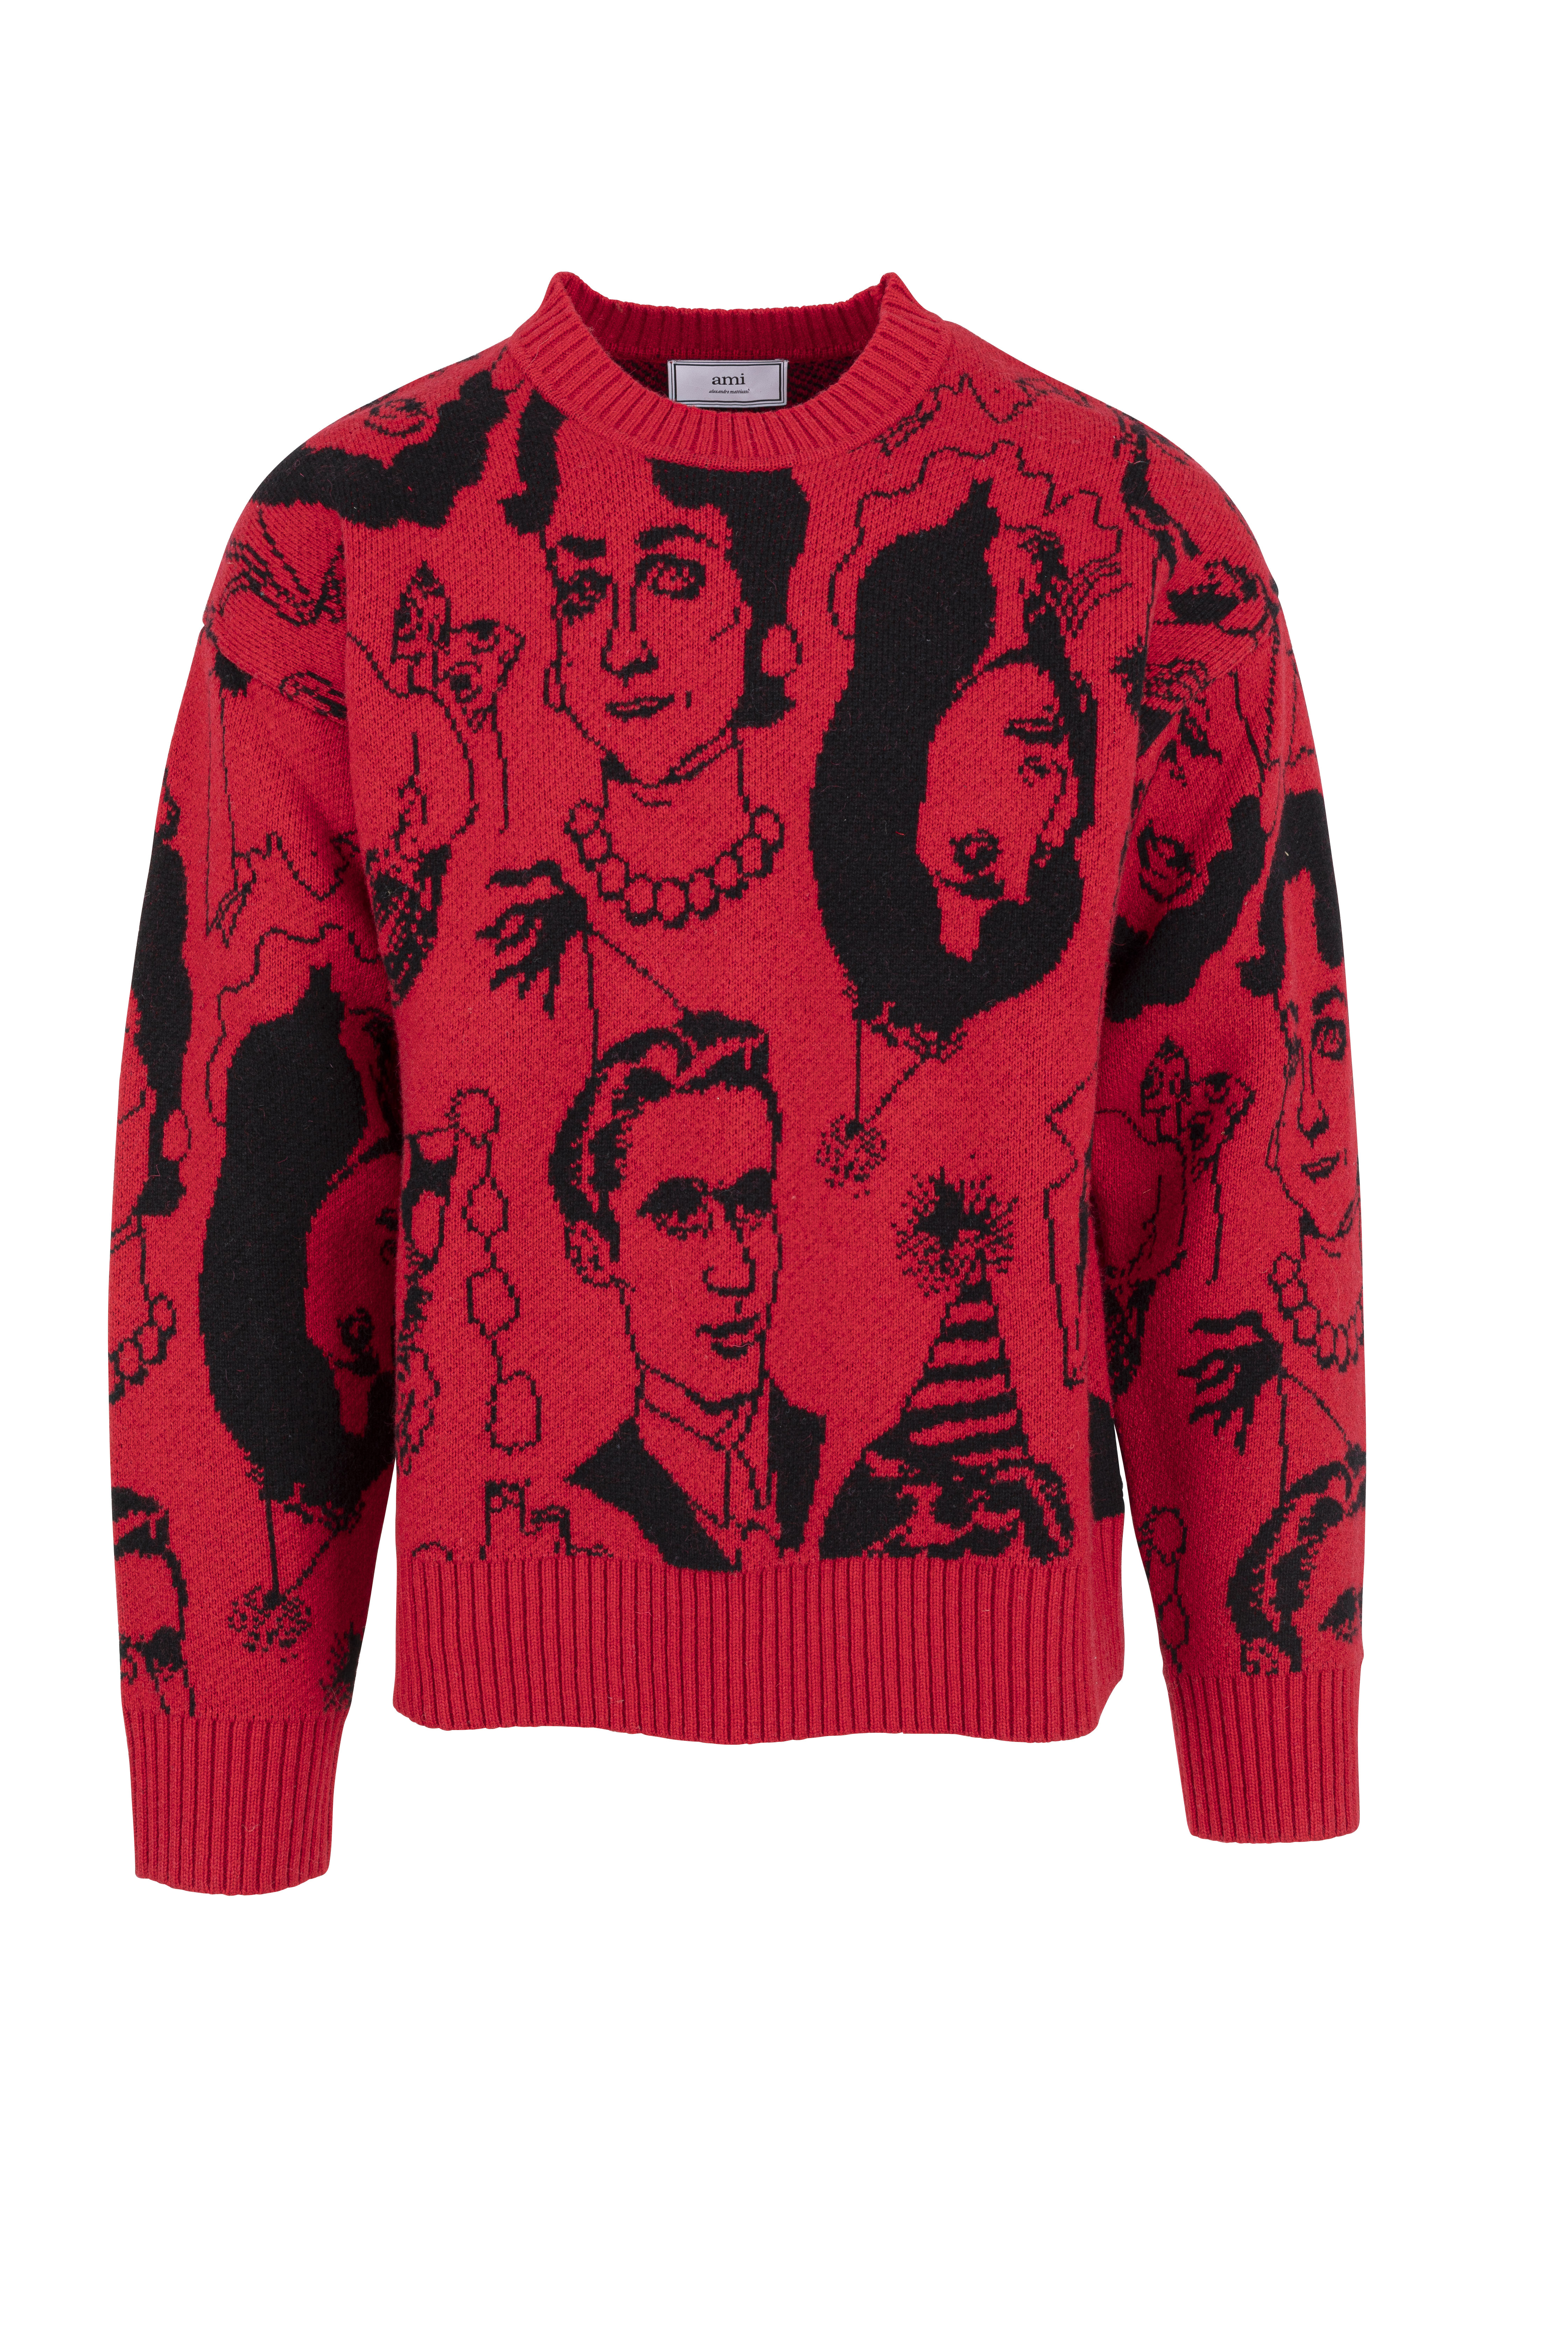 faces jacquard sweater